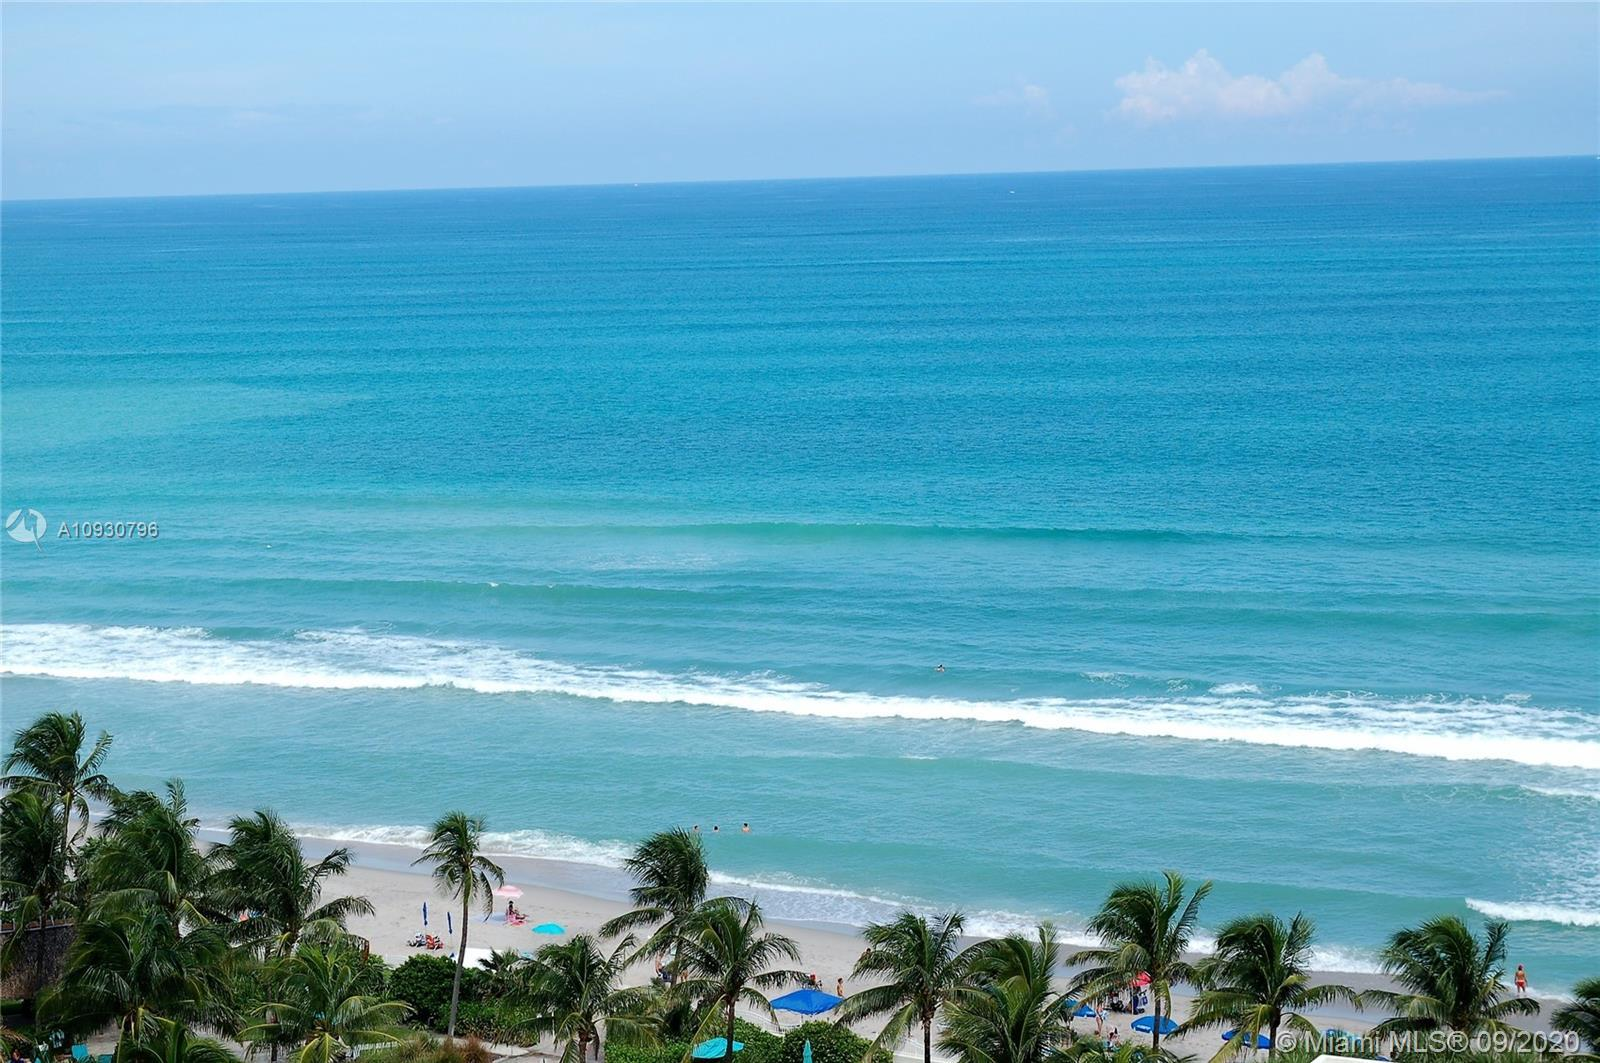 AMAZING OCEAN VIEW! INVESTOR DREAMS,NO RENTAL RESTRICTIONS.TURNKEY ALL FURNISHED .UPDATED BATHROOM.G